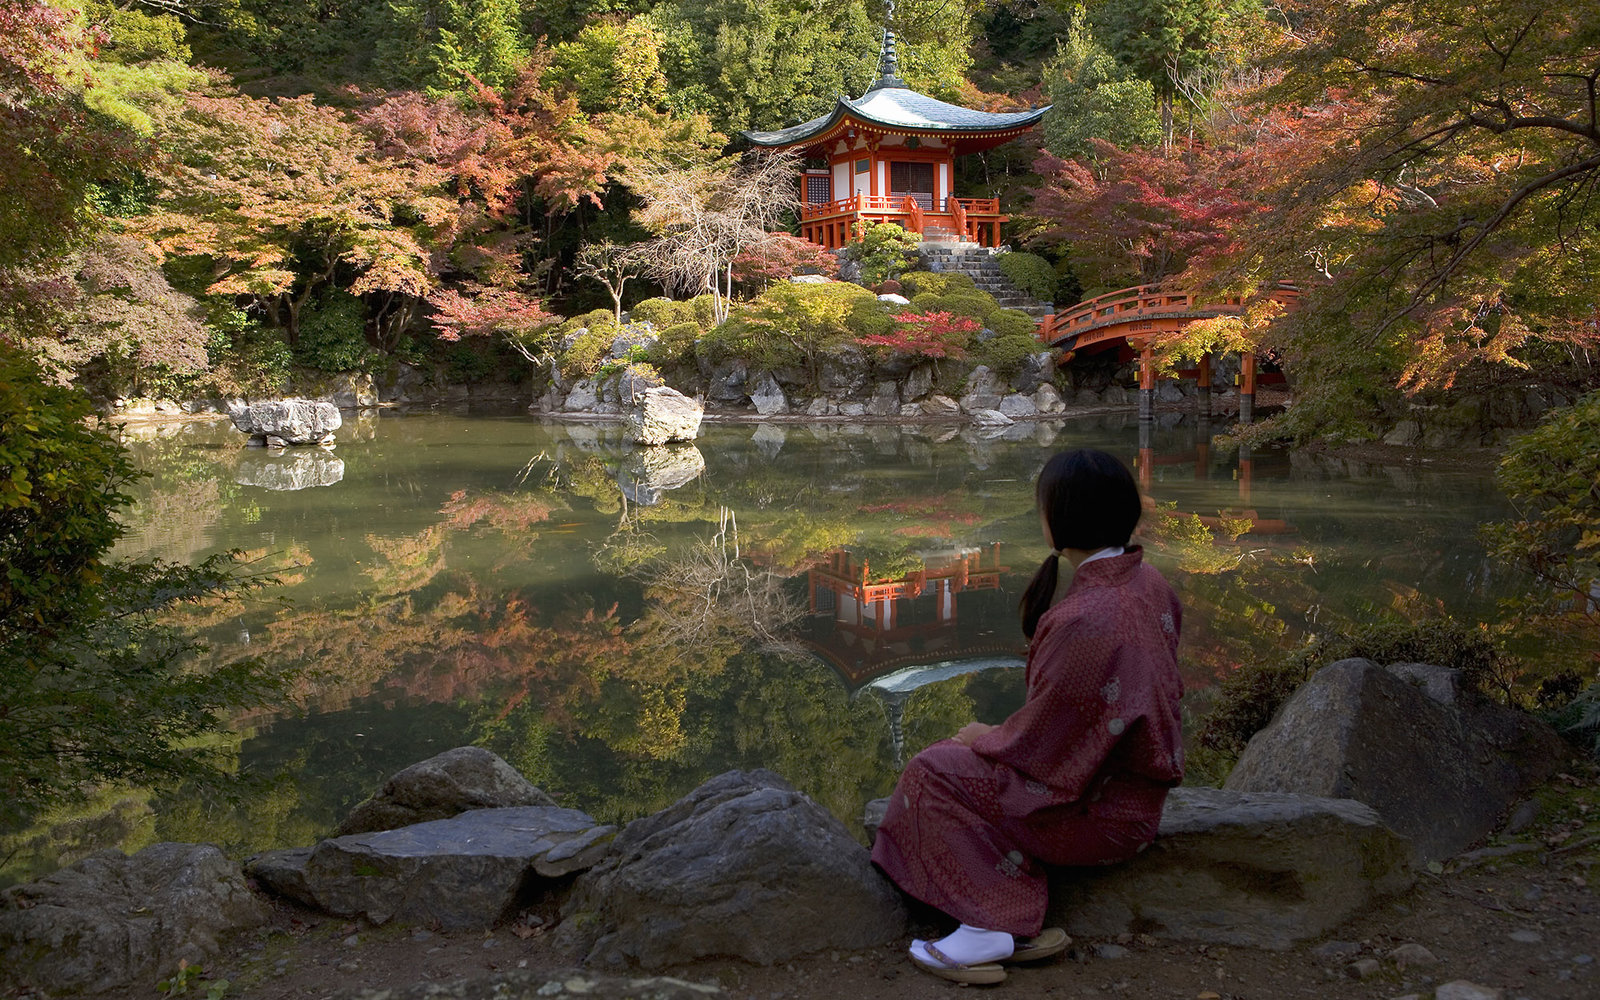 Japan, Kyoto, Daigo-ji Temple, woman on rock by pond, rear view